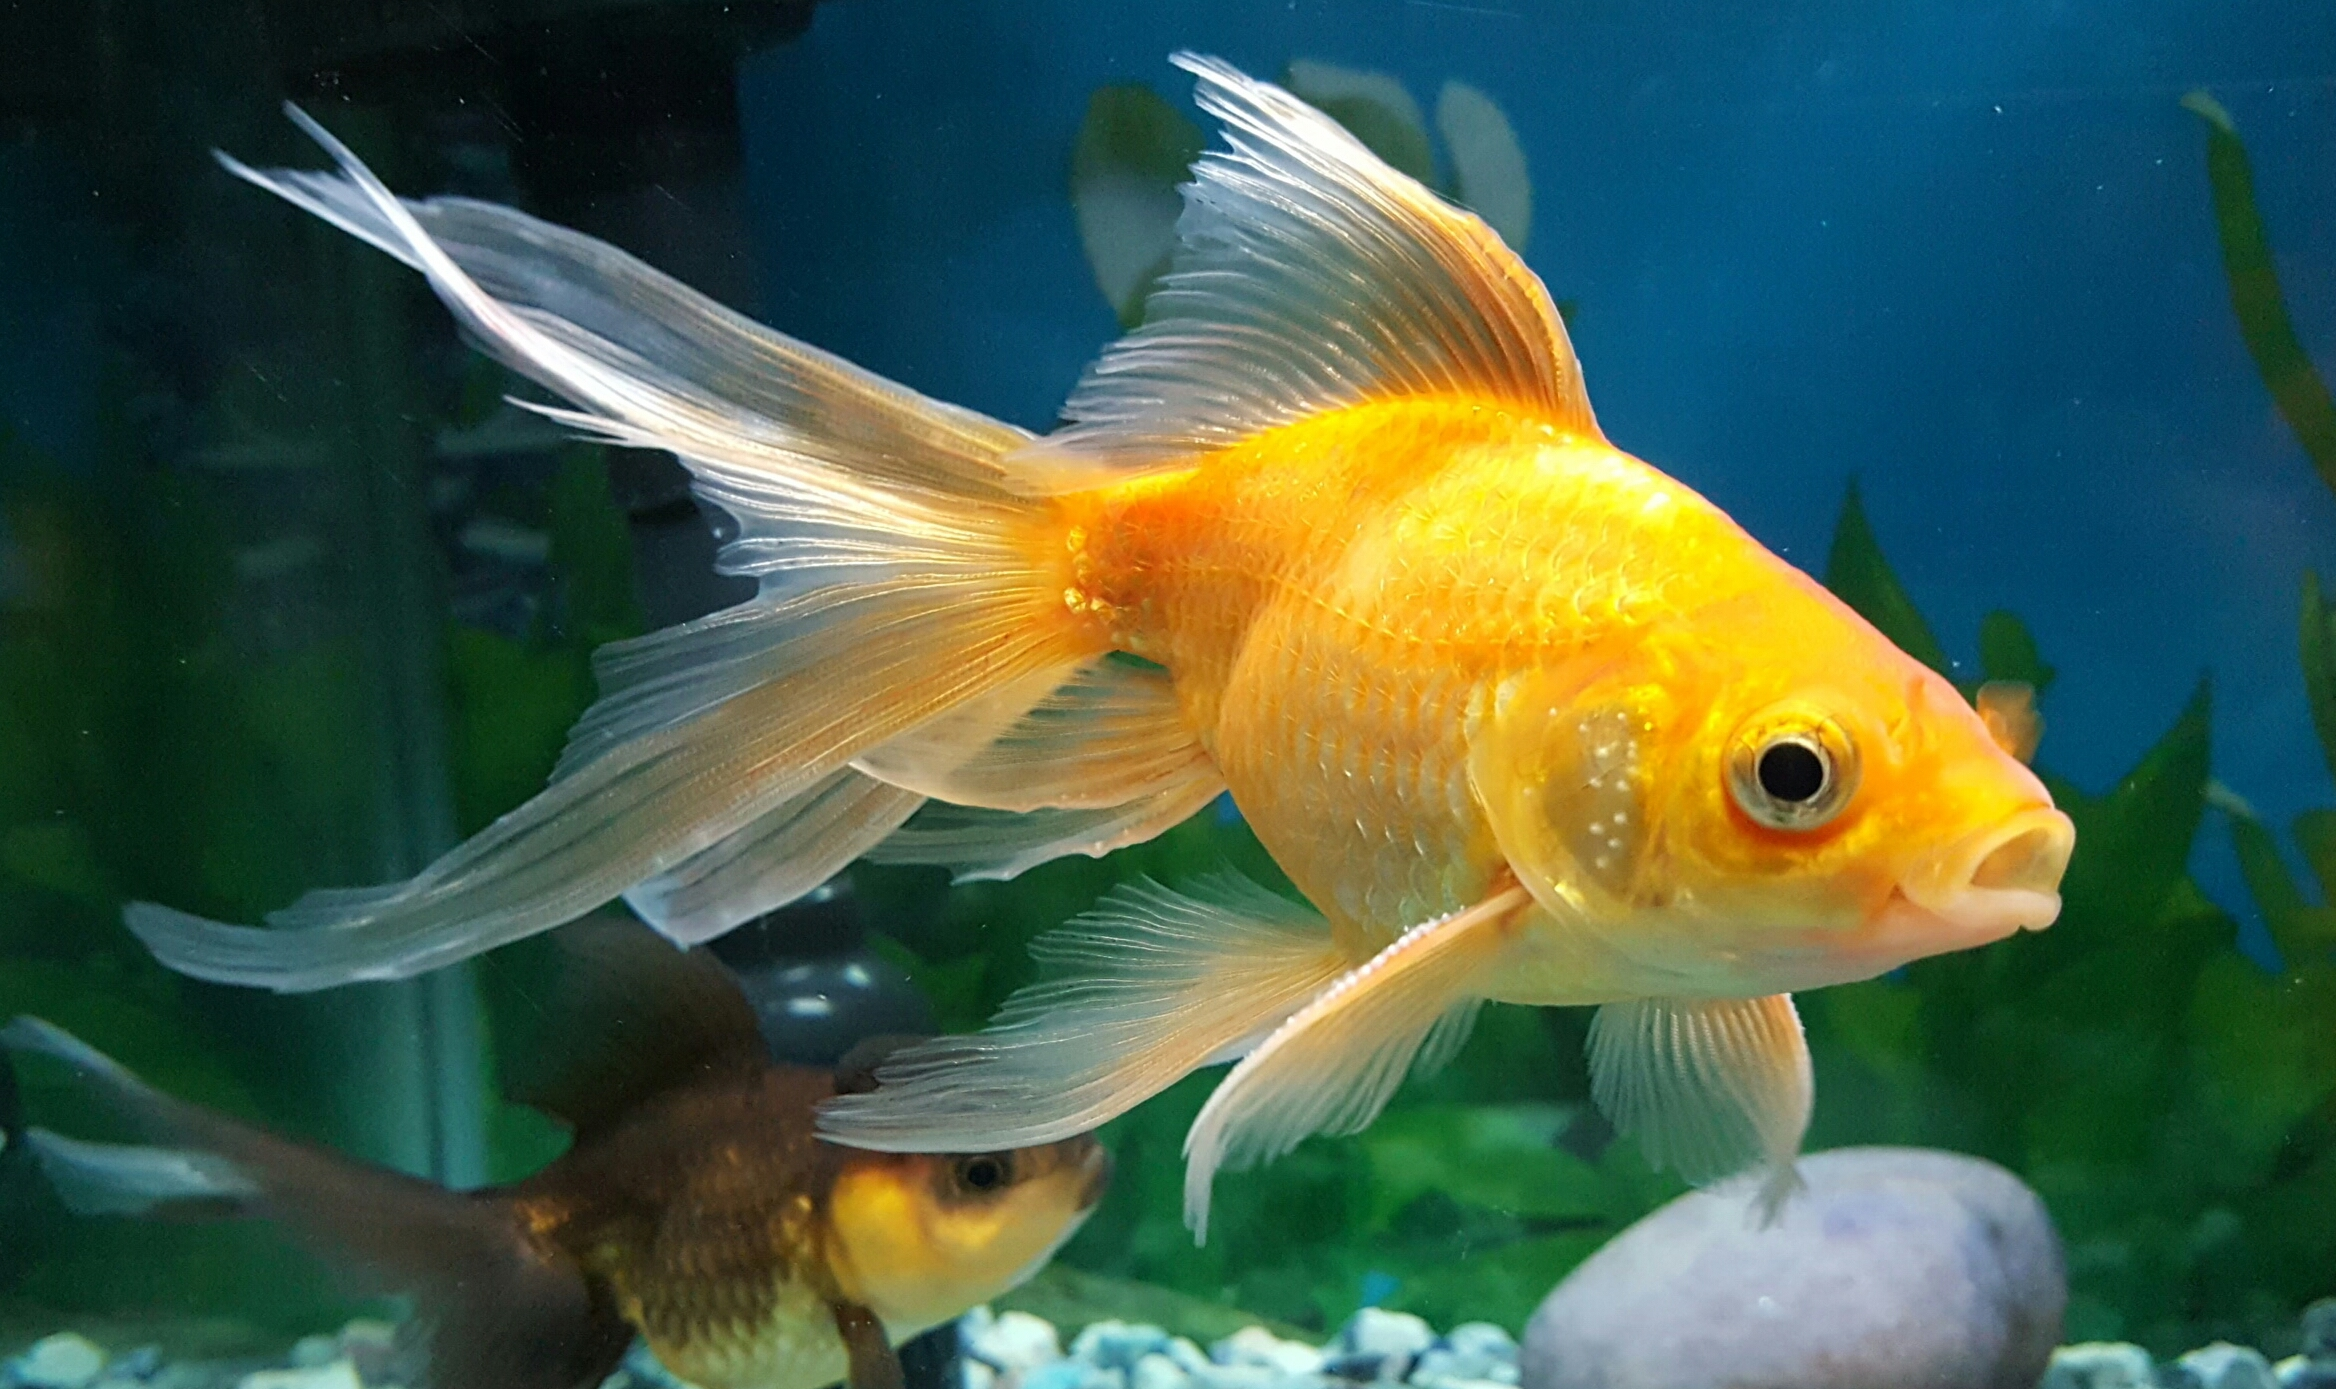 What-Do-Goldfish-Eat-In-The-Wild